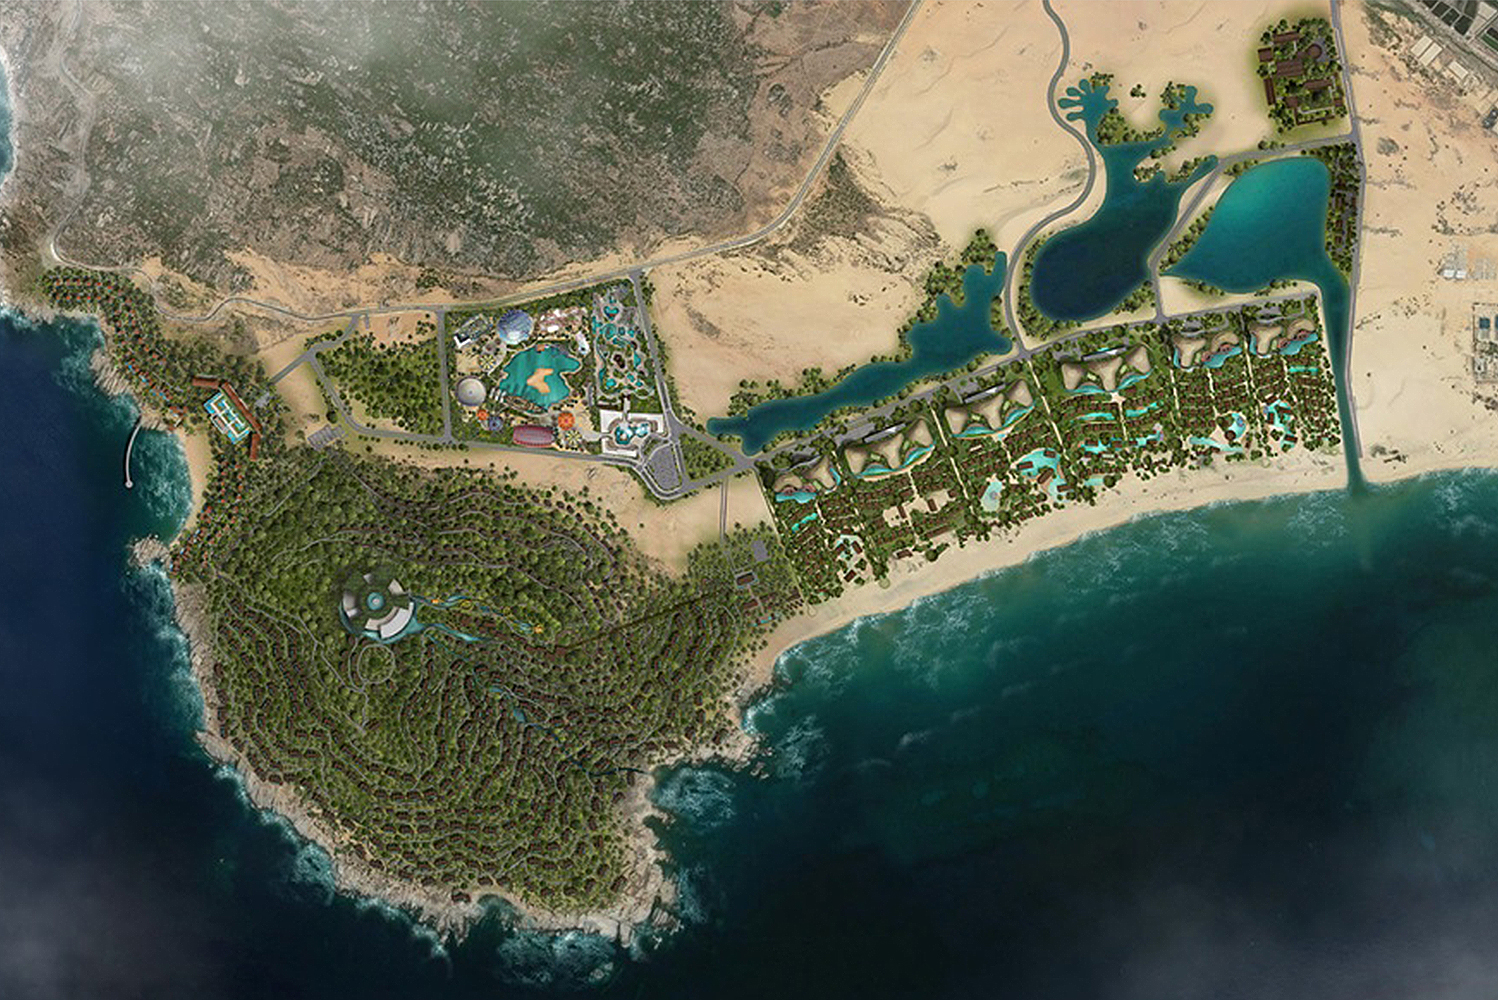 Set on the east coast of Vietnam, the design of the eco-resort reflects key elements from the surrounding environment – sand, sea, salt and sun.